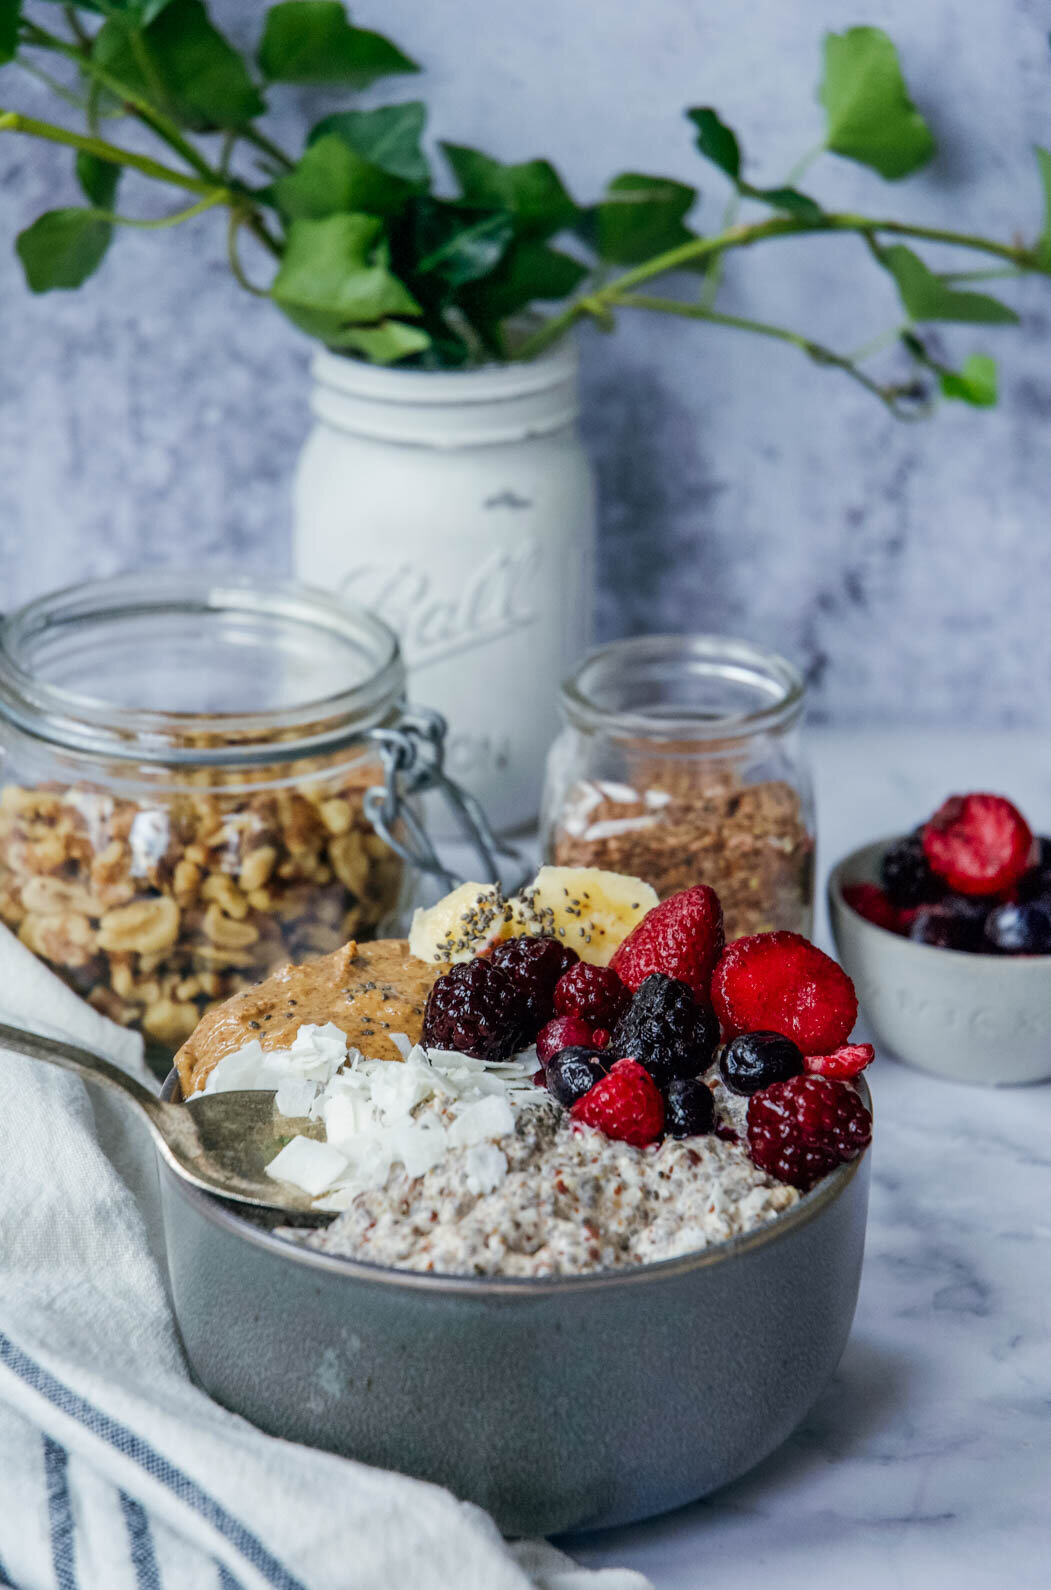 Overnight paleo oatmeal in bowl with nuts and seeds and fruits